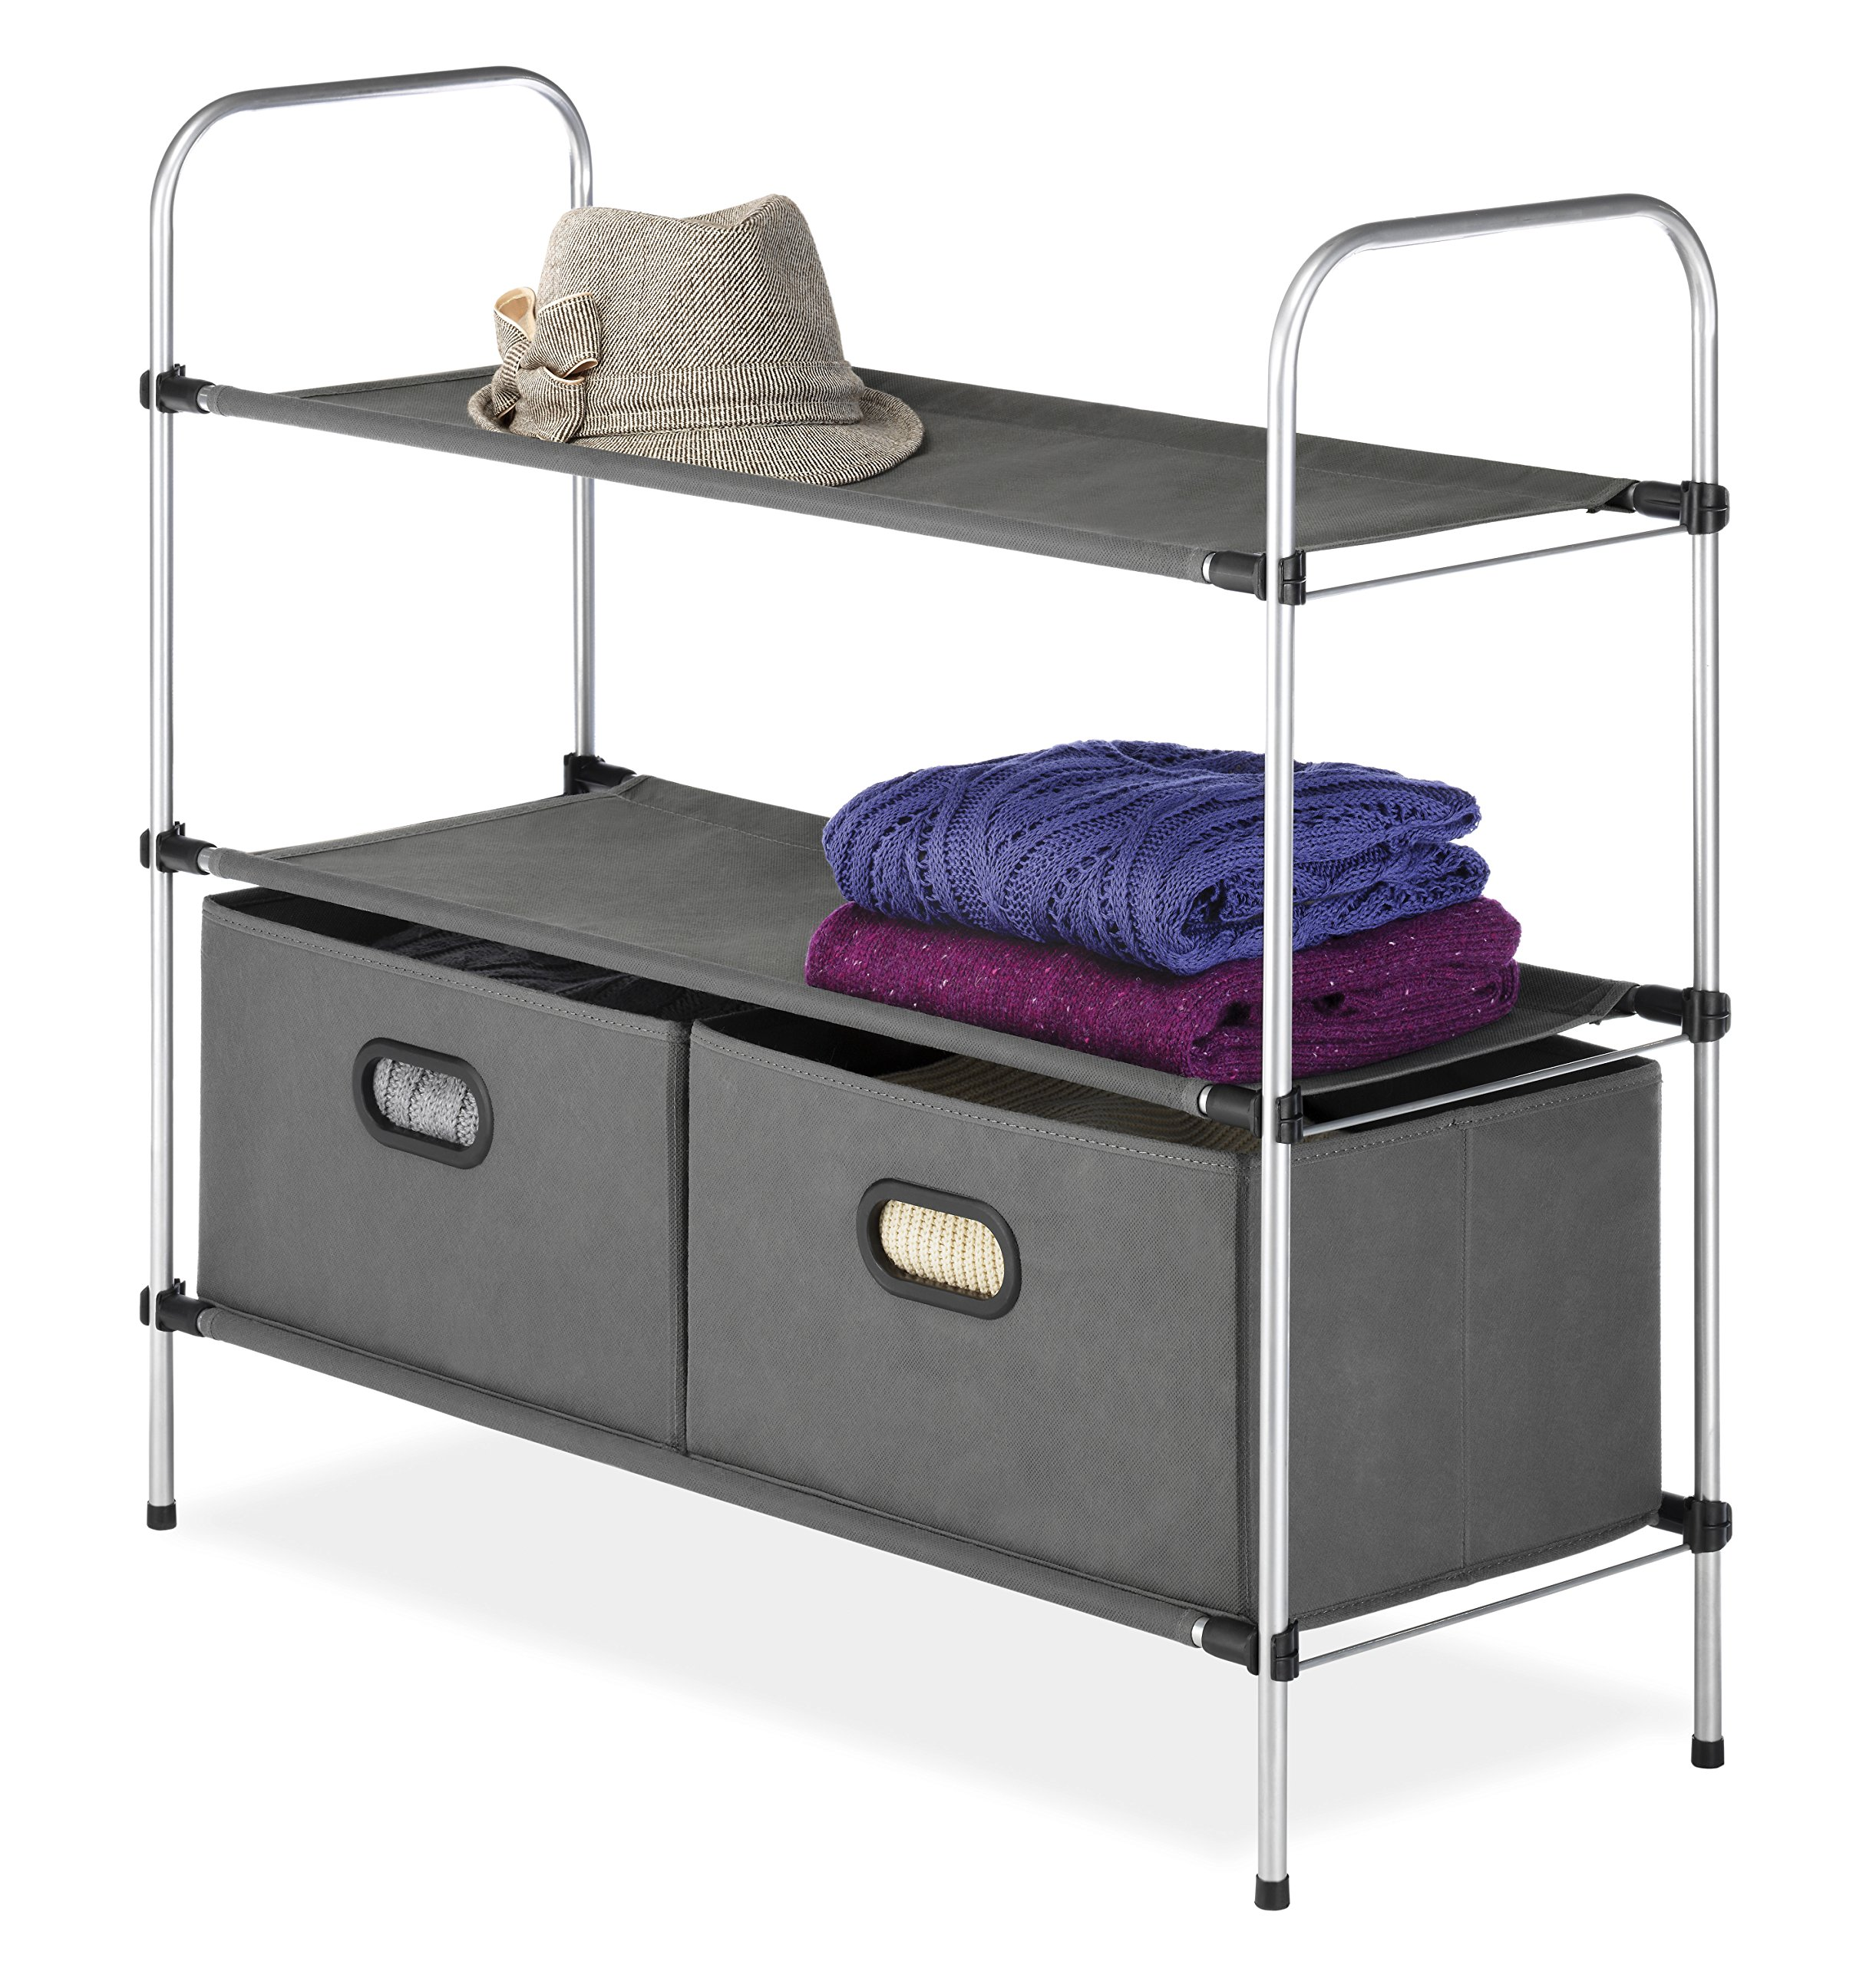 Whitmor Closet Shelves and Drawers - Multipurpose Portable Closet Organization Solution